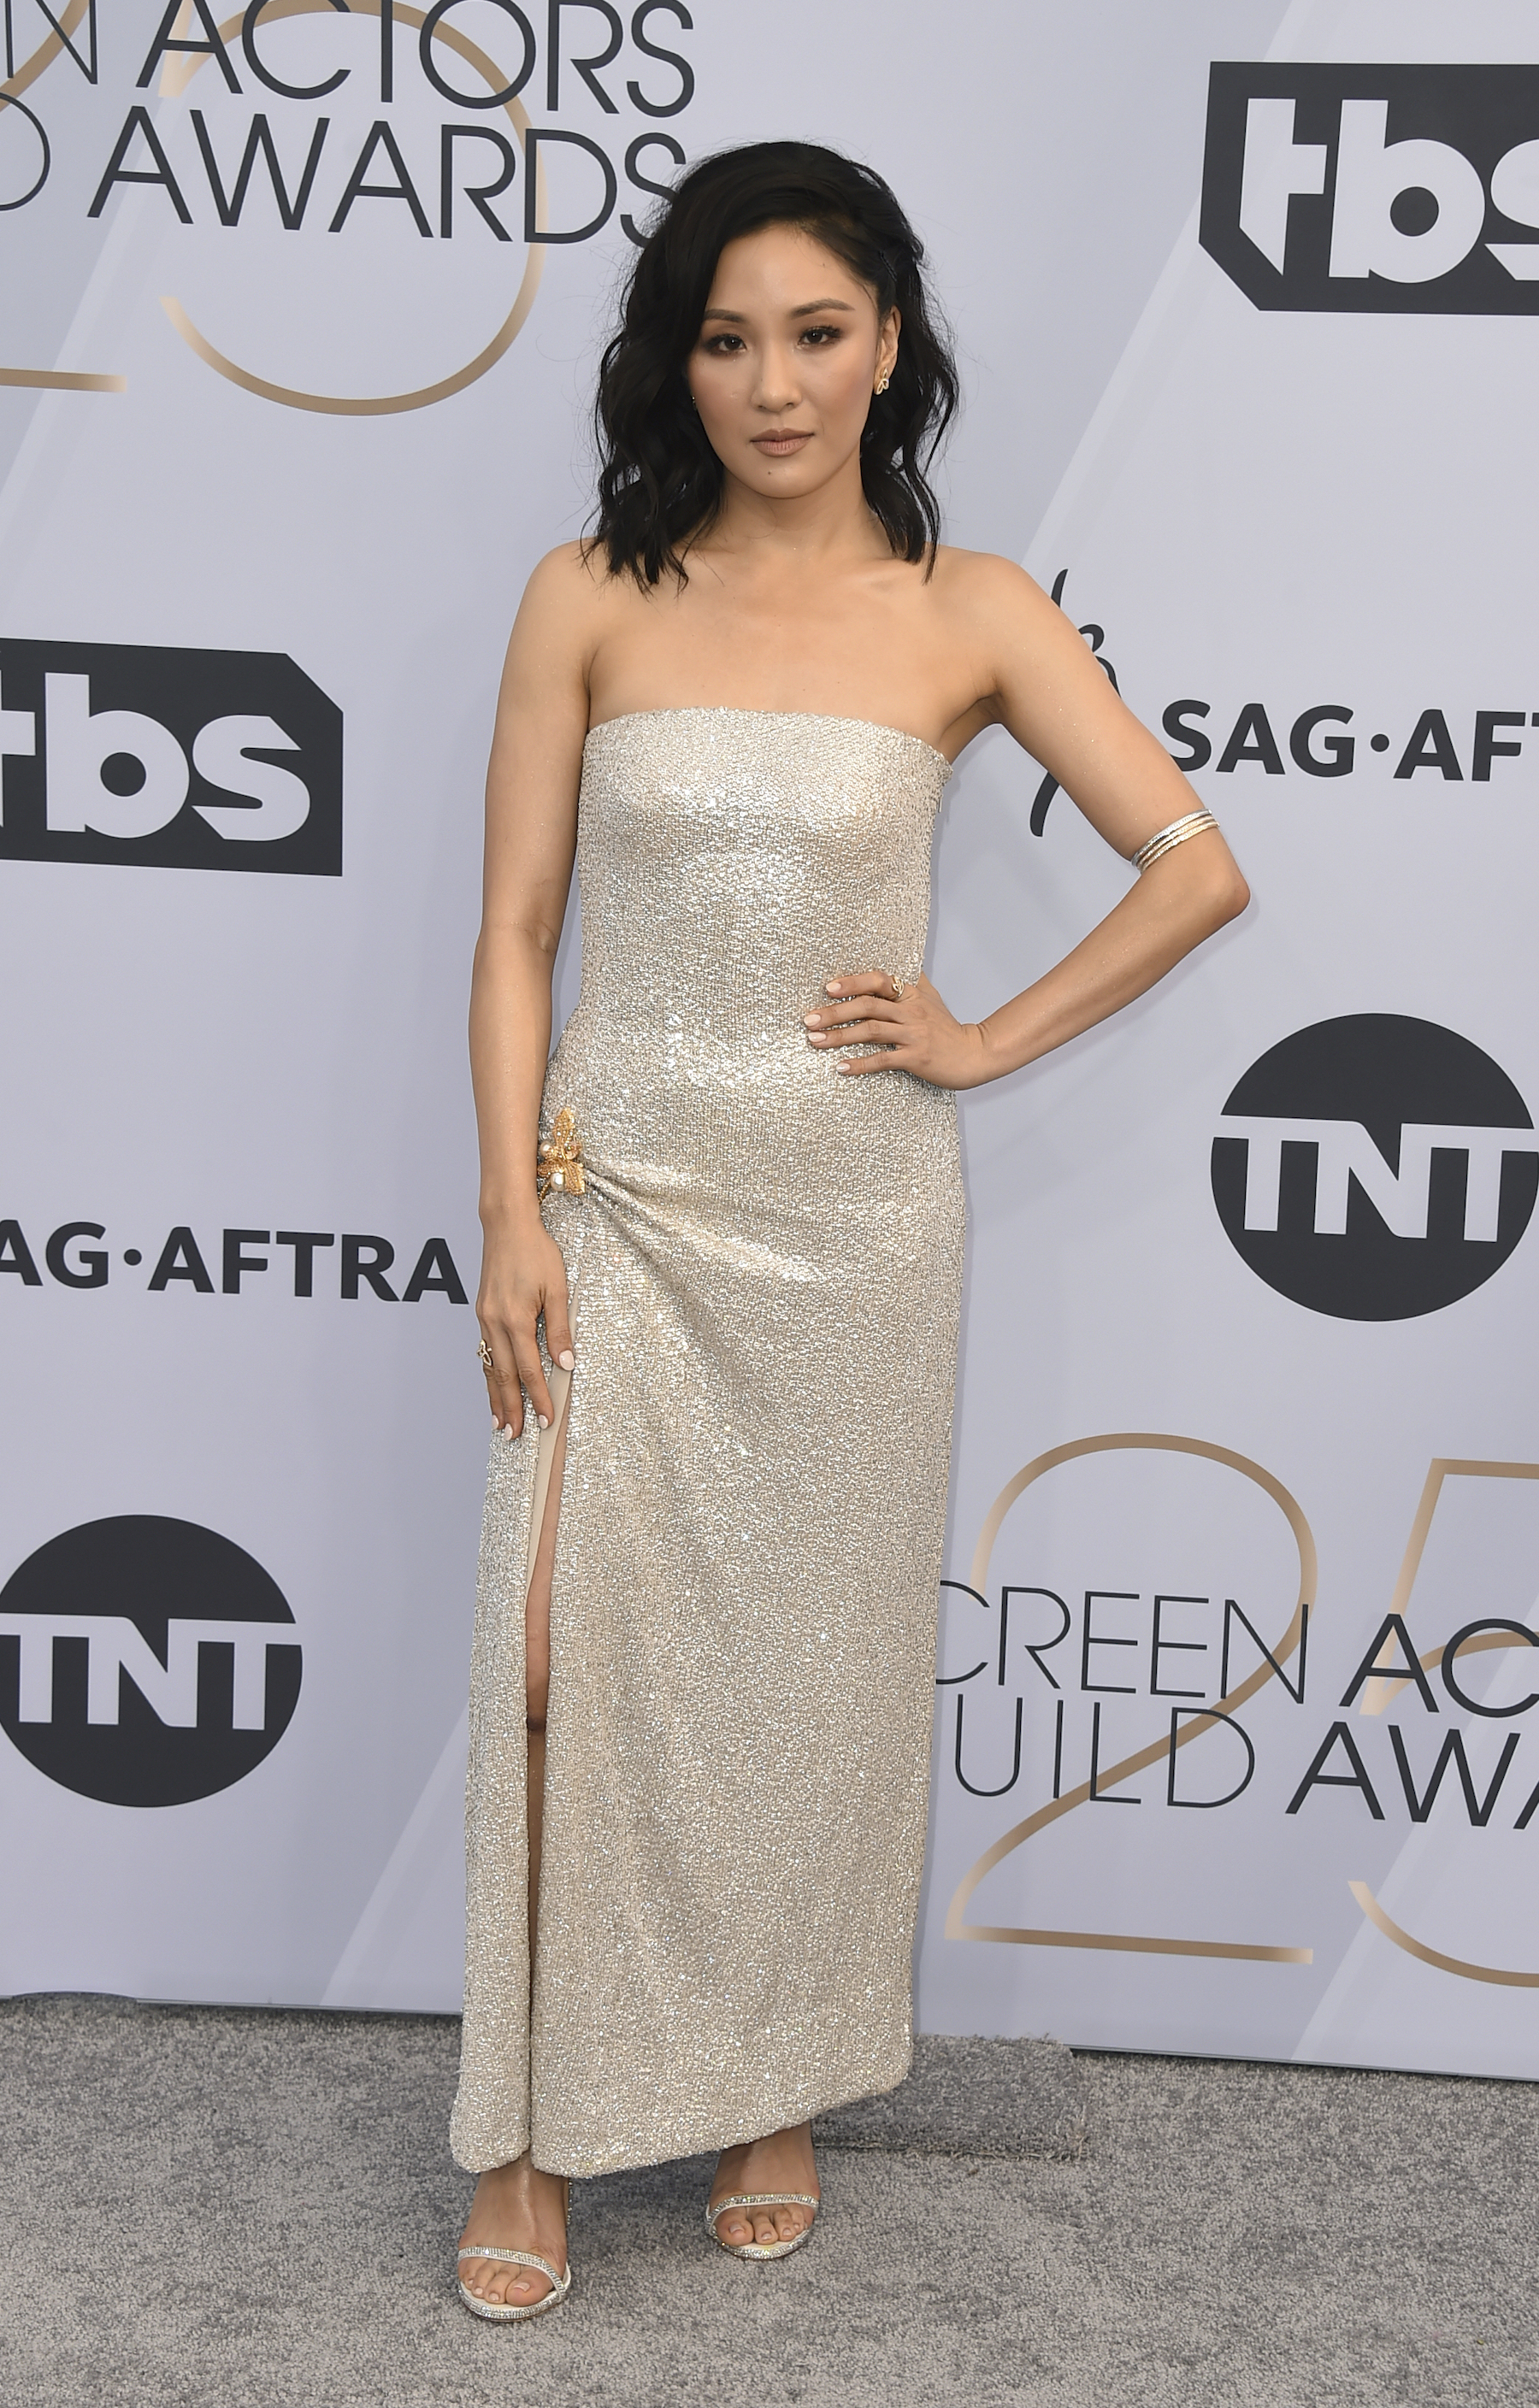 <div class='meta'><div class='origin-logo' data-origin='AP'></div><span class='caption-text' data-credit='Jordan Strauss/Invision/AP'>Constance Wu arrives at the 25th annual Screen Actors Guild Awards at the Shrine Auditorium & Expo Hall on Sunday, Jan. 27, 2019, in Los Angeles.</span></div>